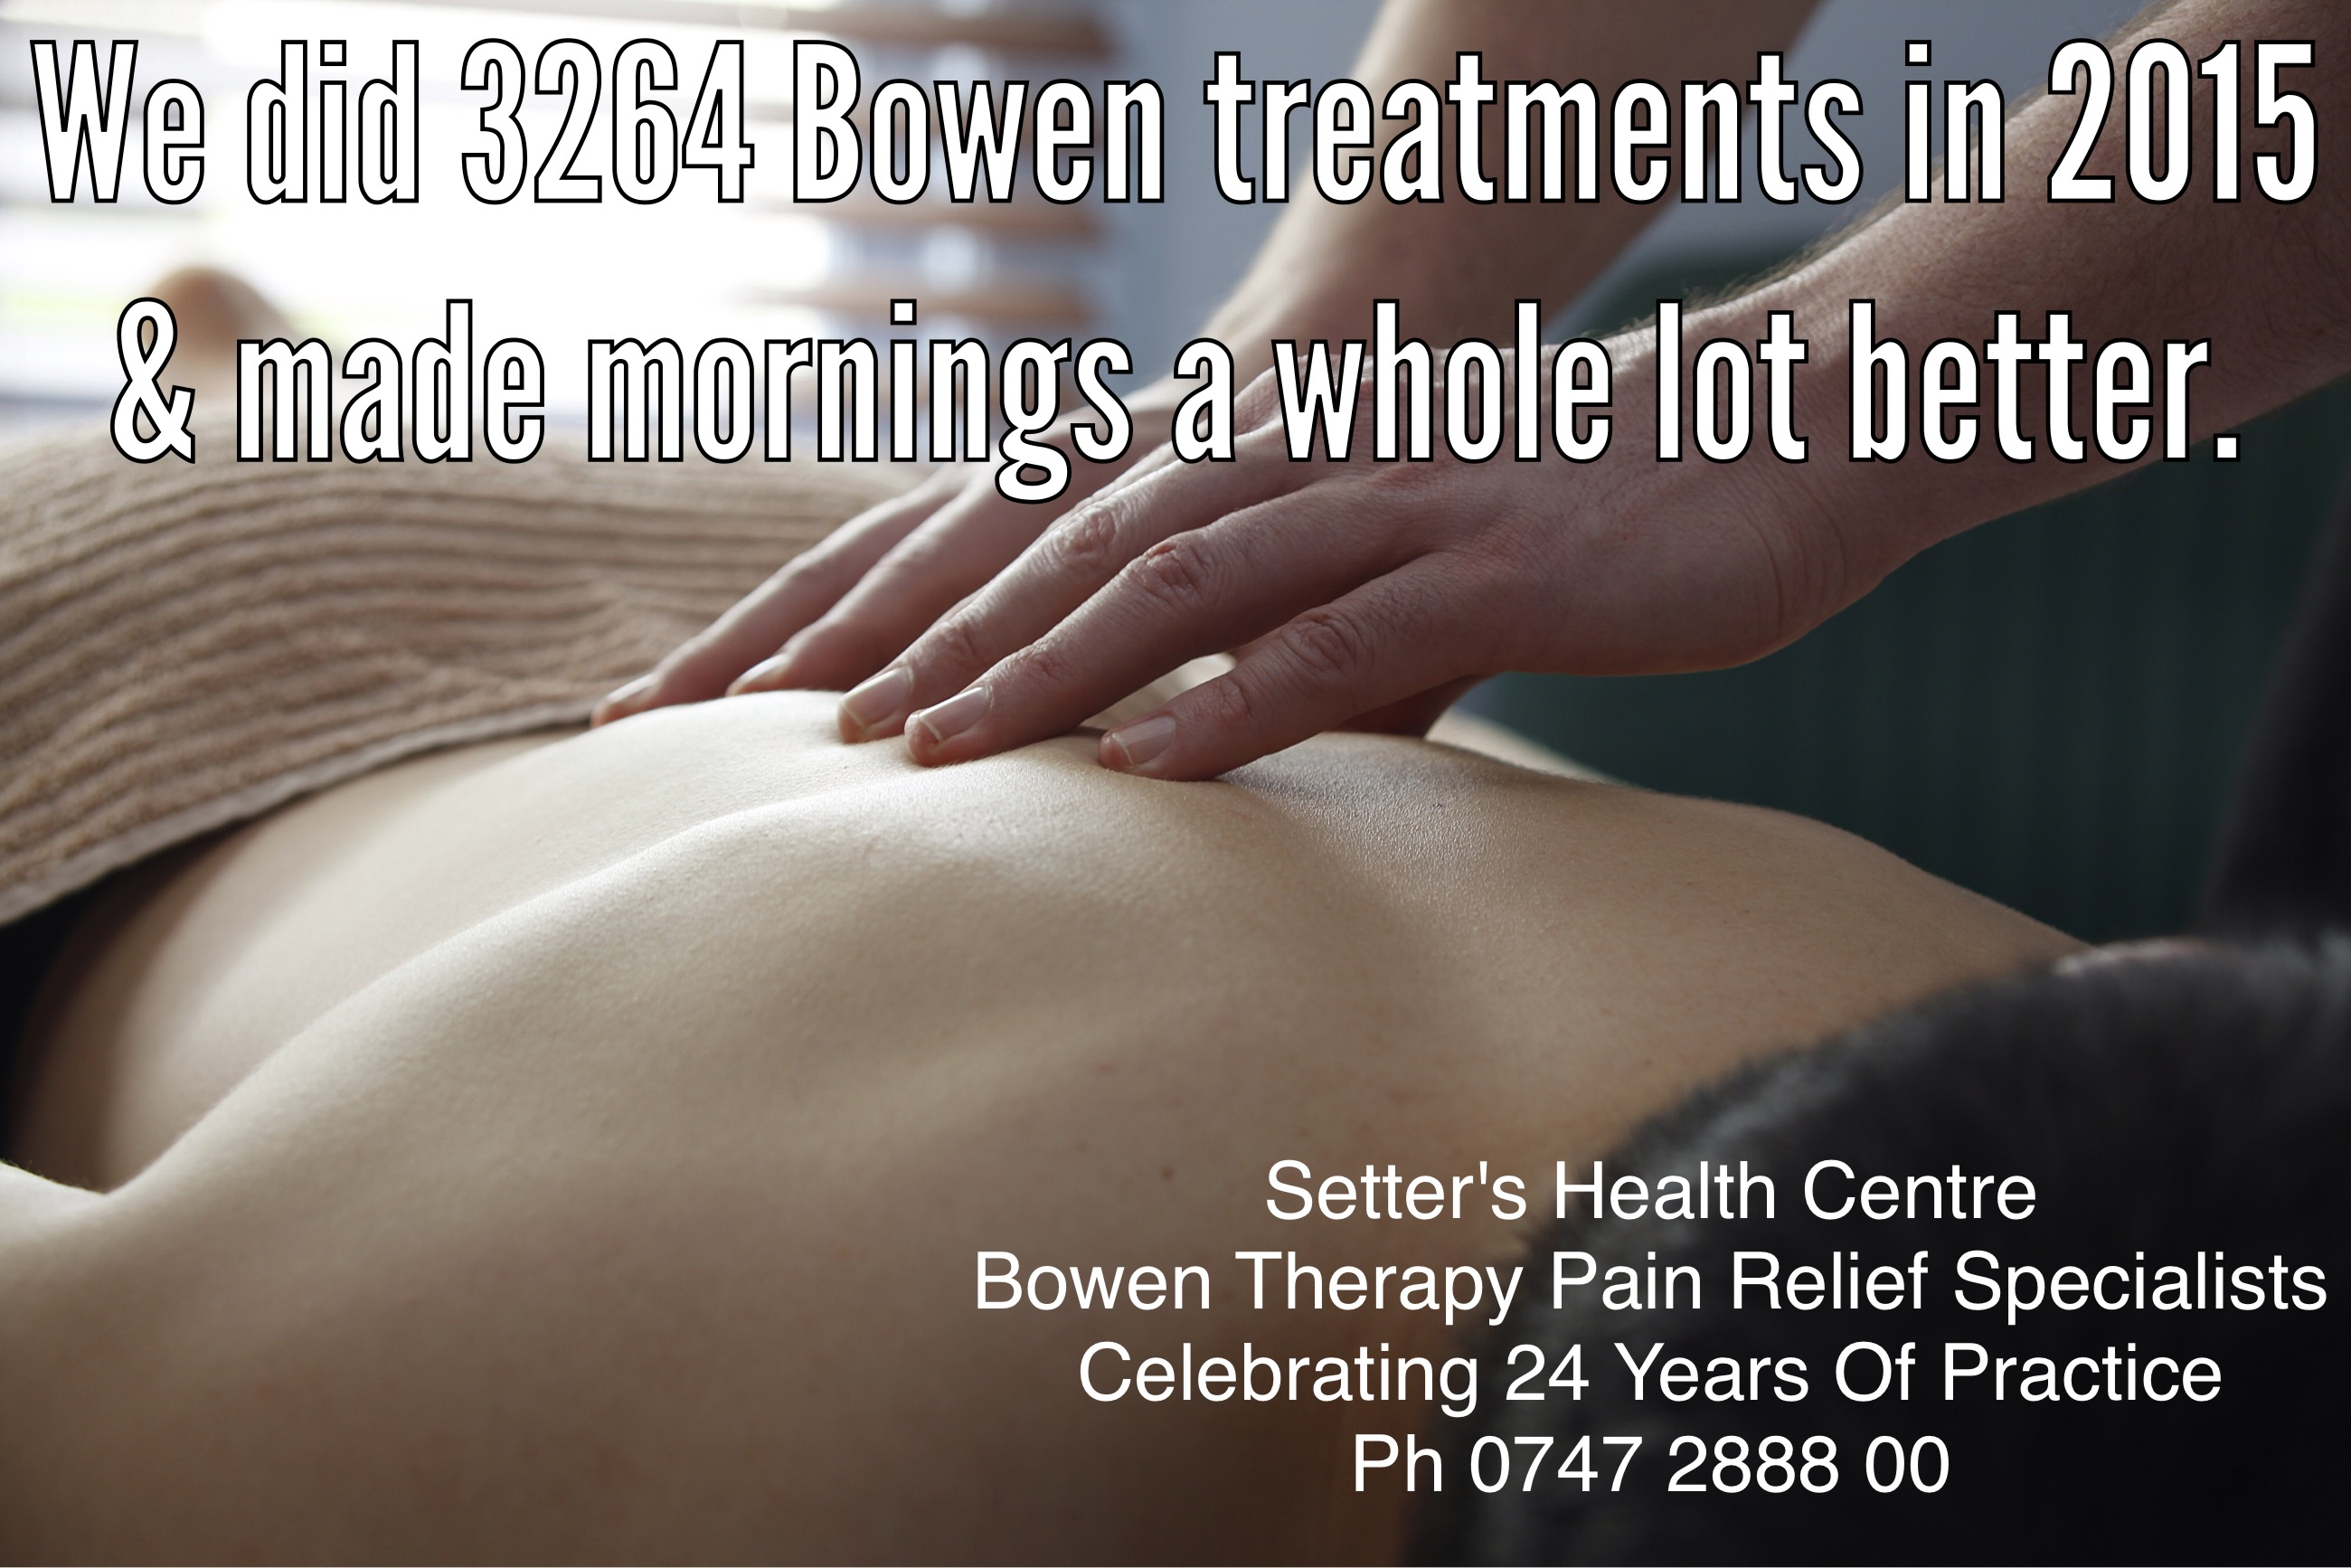 We did 3264 Bowen Treatments in 2015